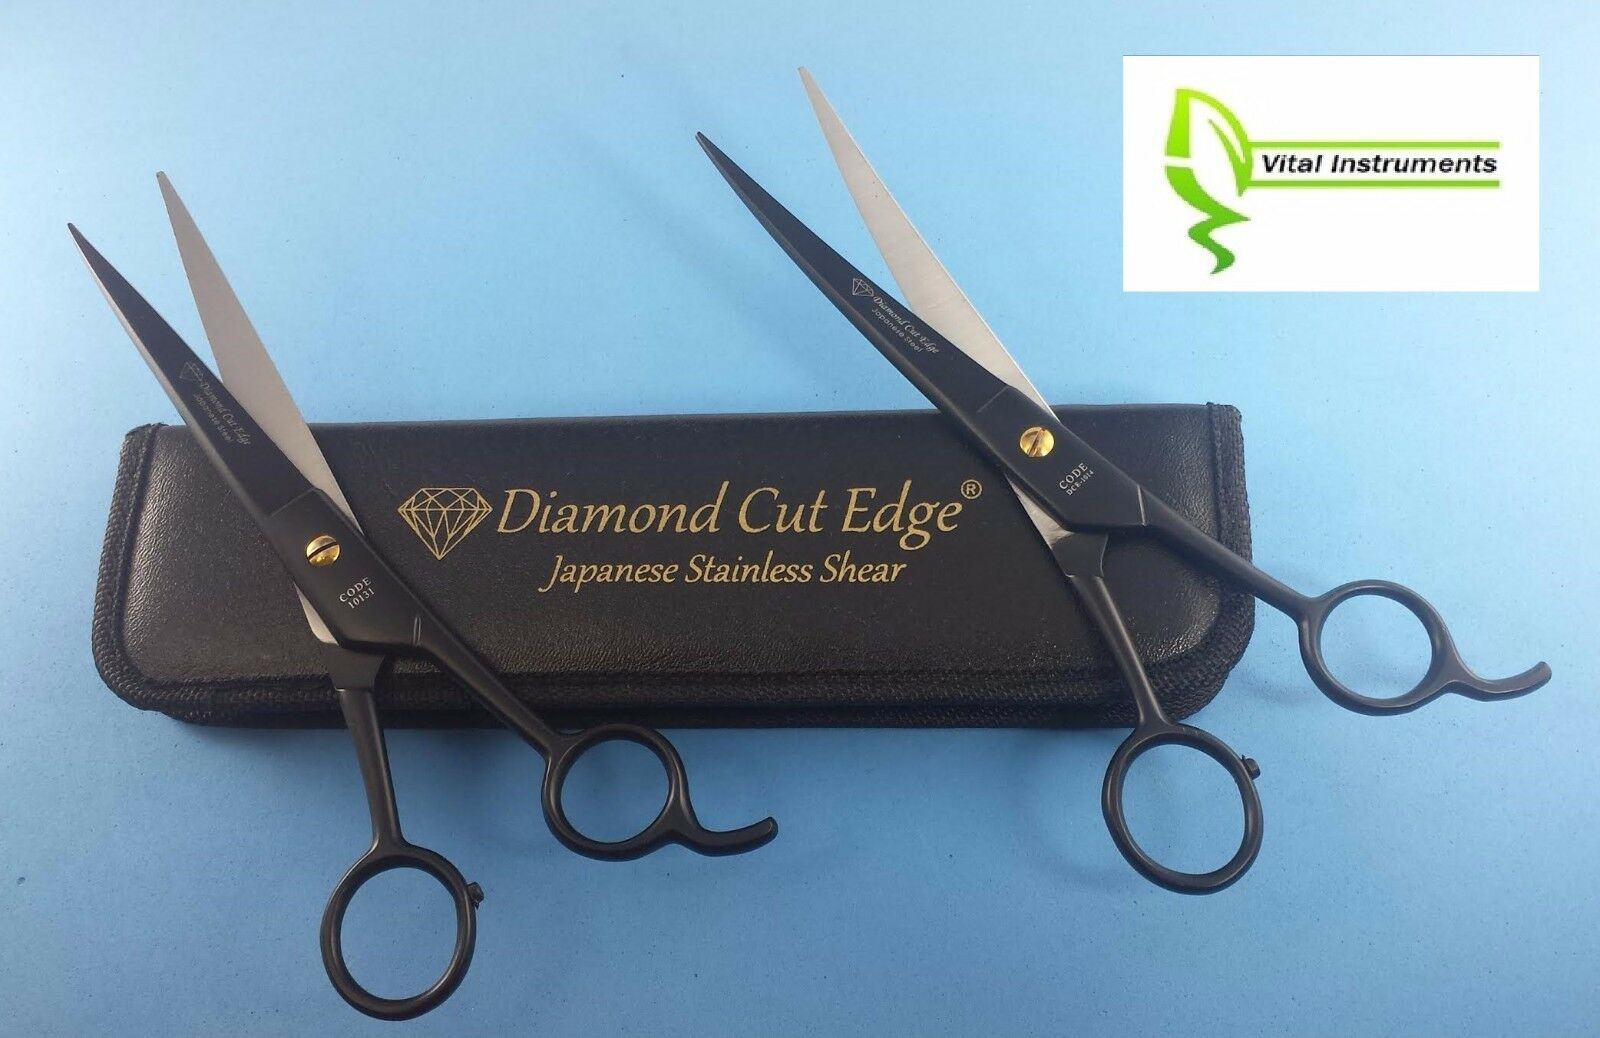 Pet Dog Grooming Scissors Shears 8.5 8.5 8.5 Professional Japanese Stainless STR  CVD 1217b4